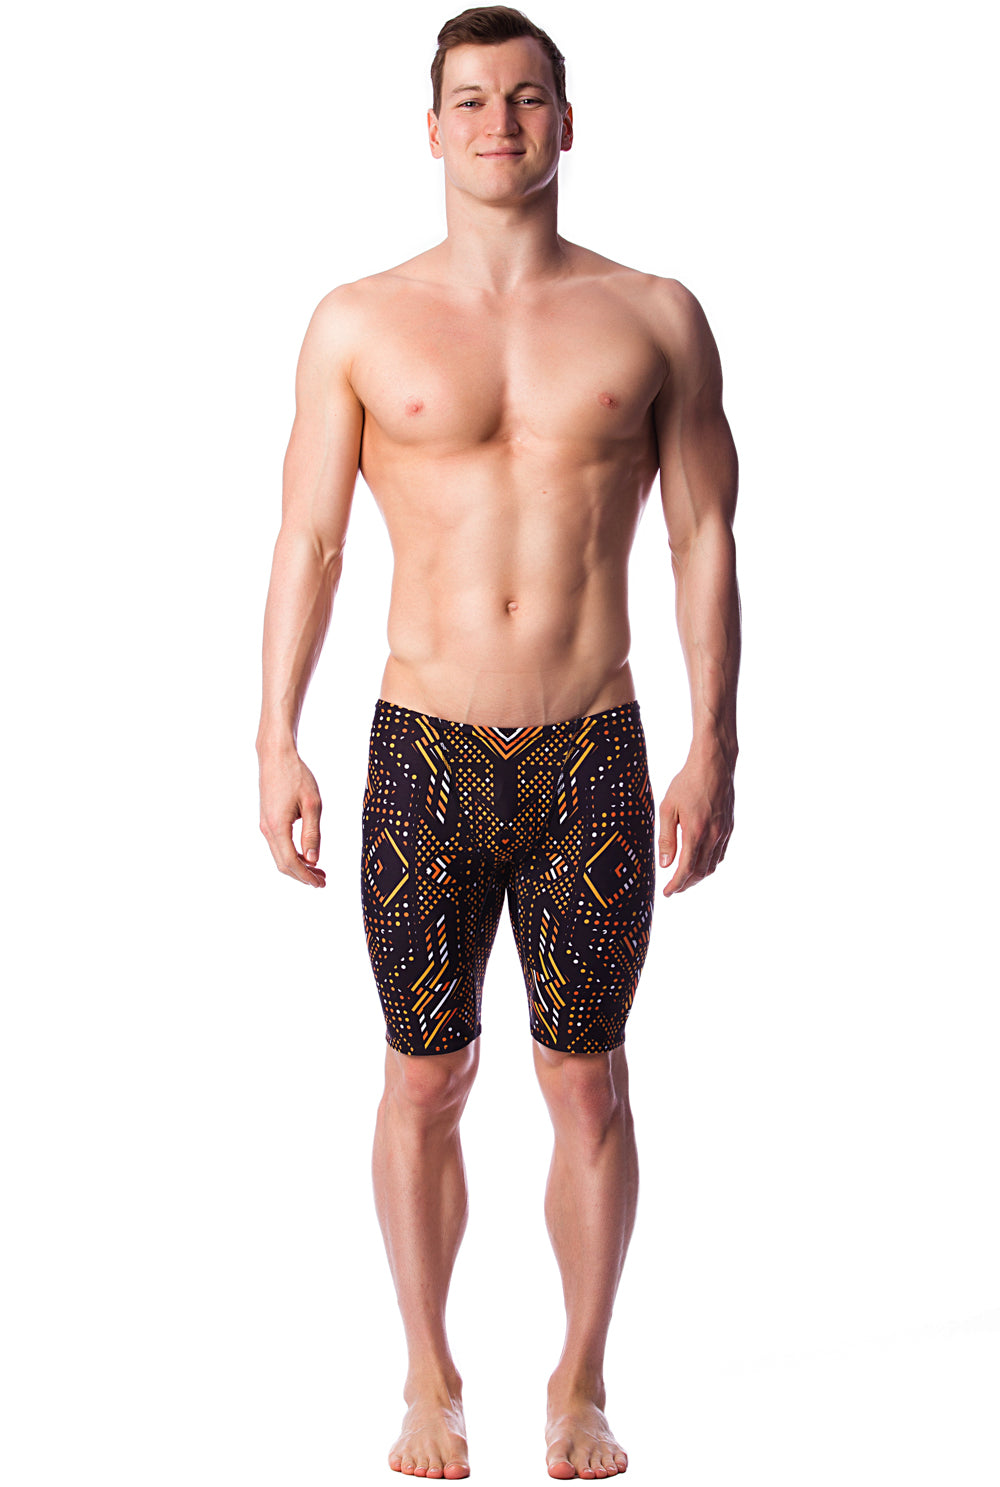 Polar Power Men's Jammers - Shop Zealous Training Swimwear